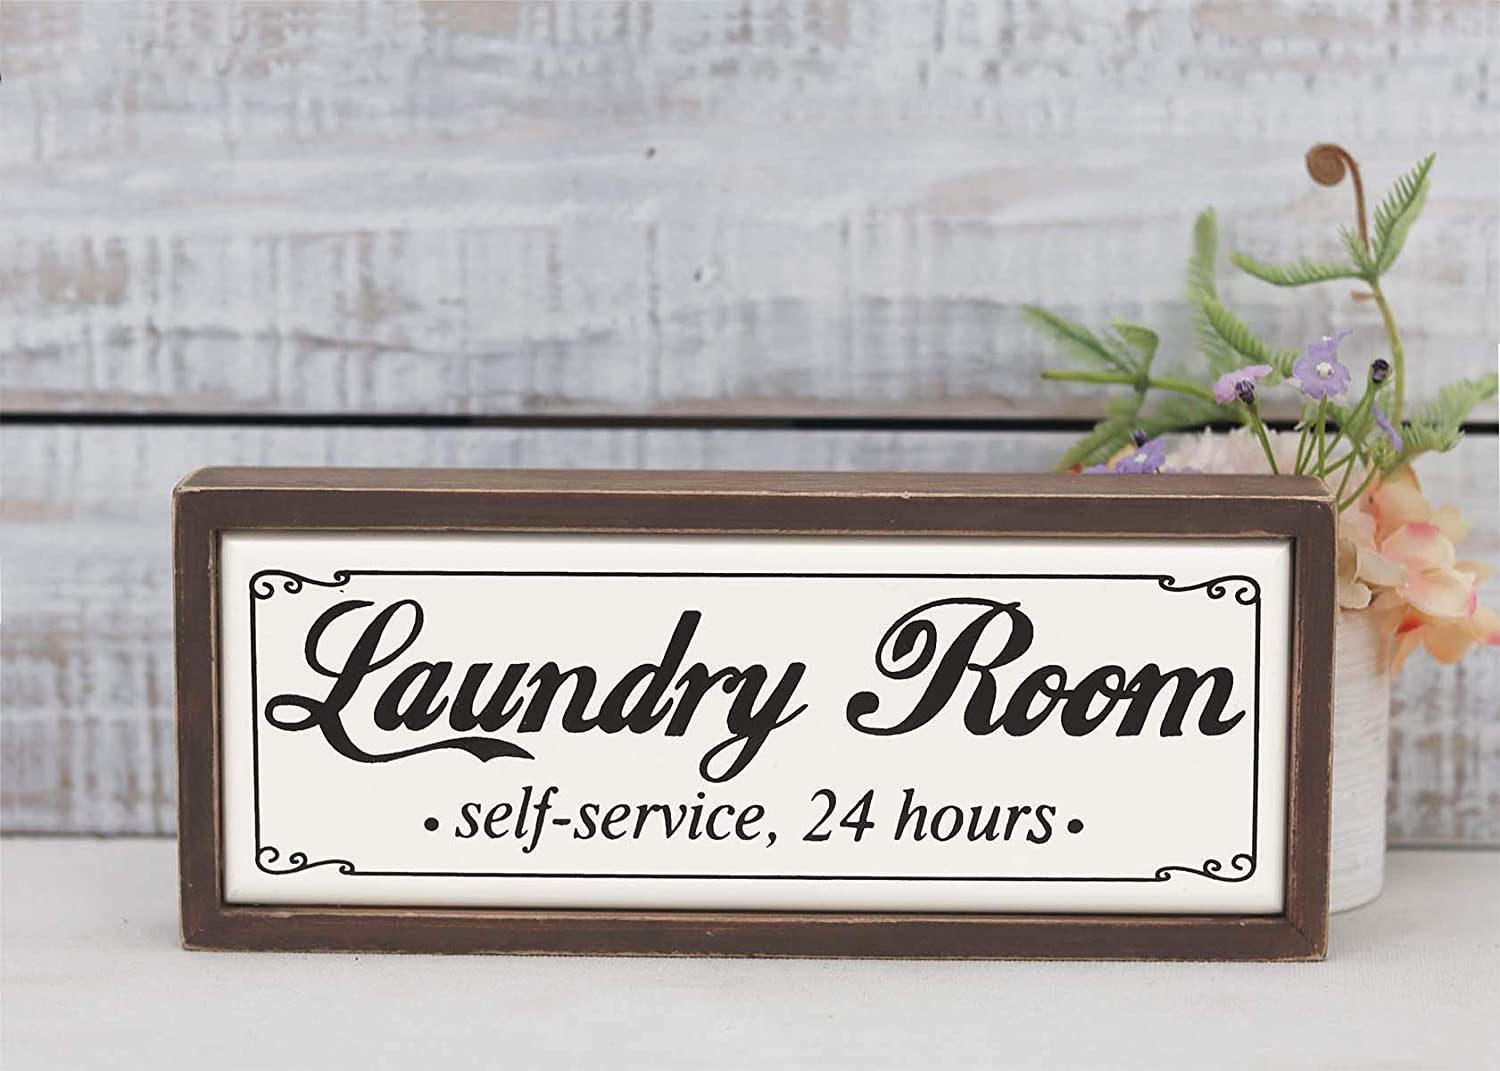 Small Laundry Room Self-Service 24 Hours Wood Block Sign, Farmhouse Rustic Wood Tabletop Decor for Laundry Room, Freestanding Laundry Room Decor, 9.75 x 1.5 x 4 Inches